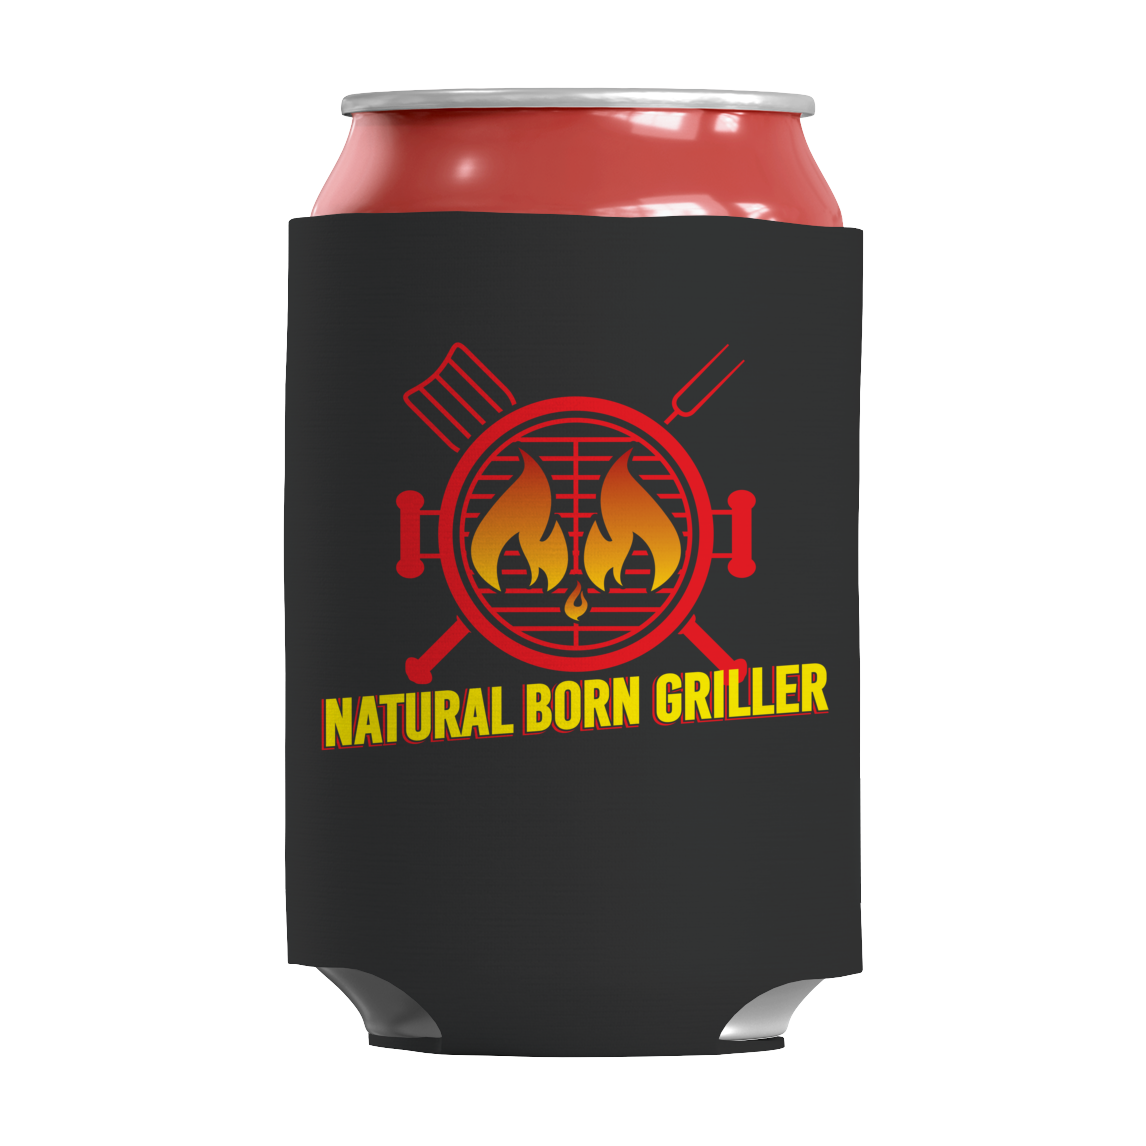 Natural Born Griller 1 - Limited Edition